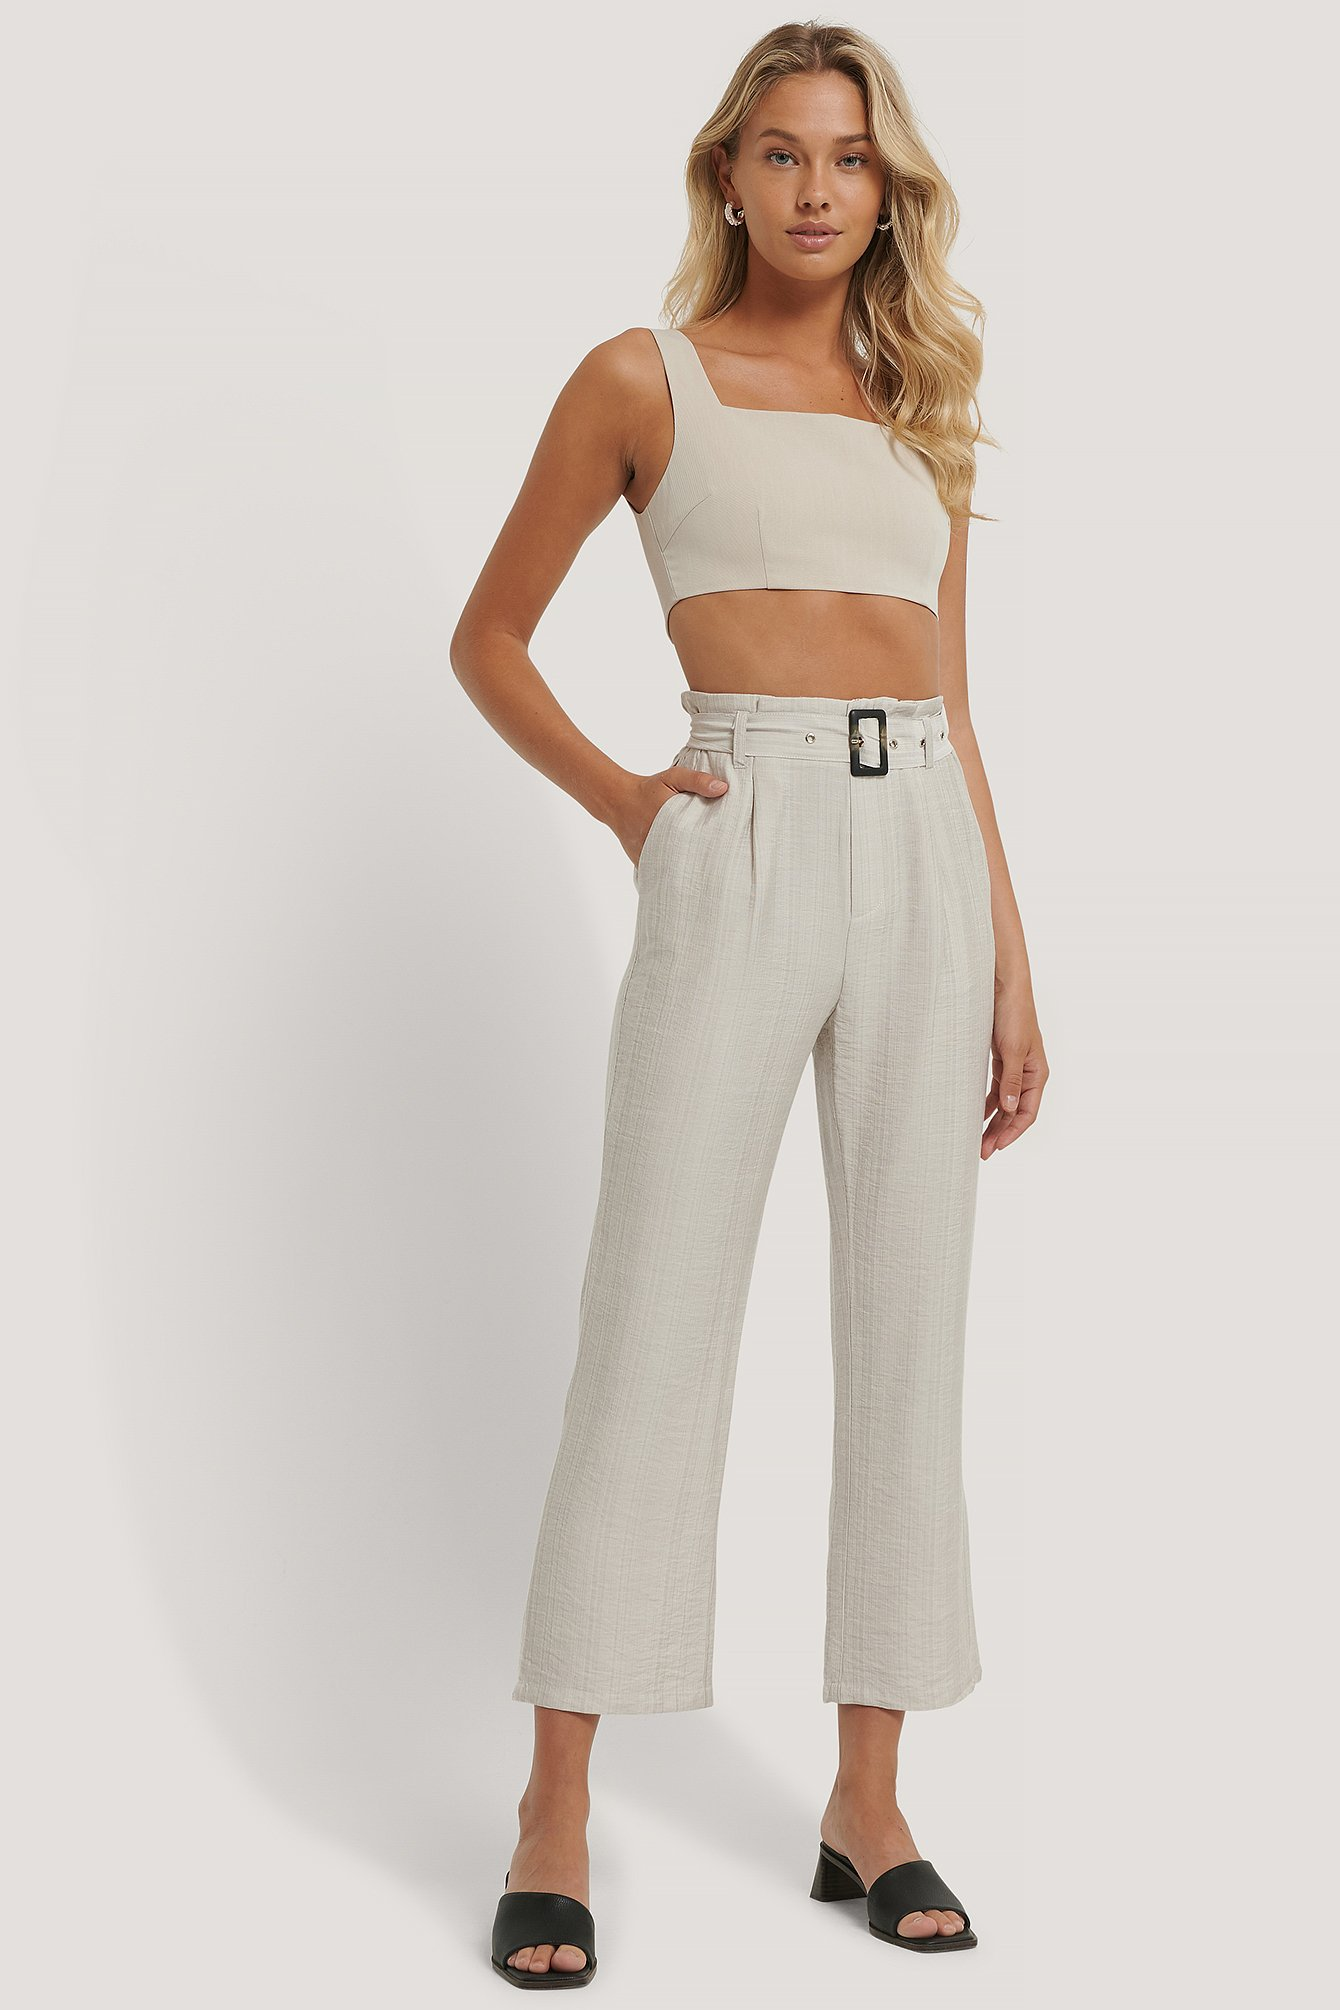 Light Beige Abby Pant